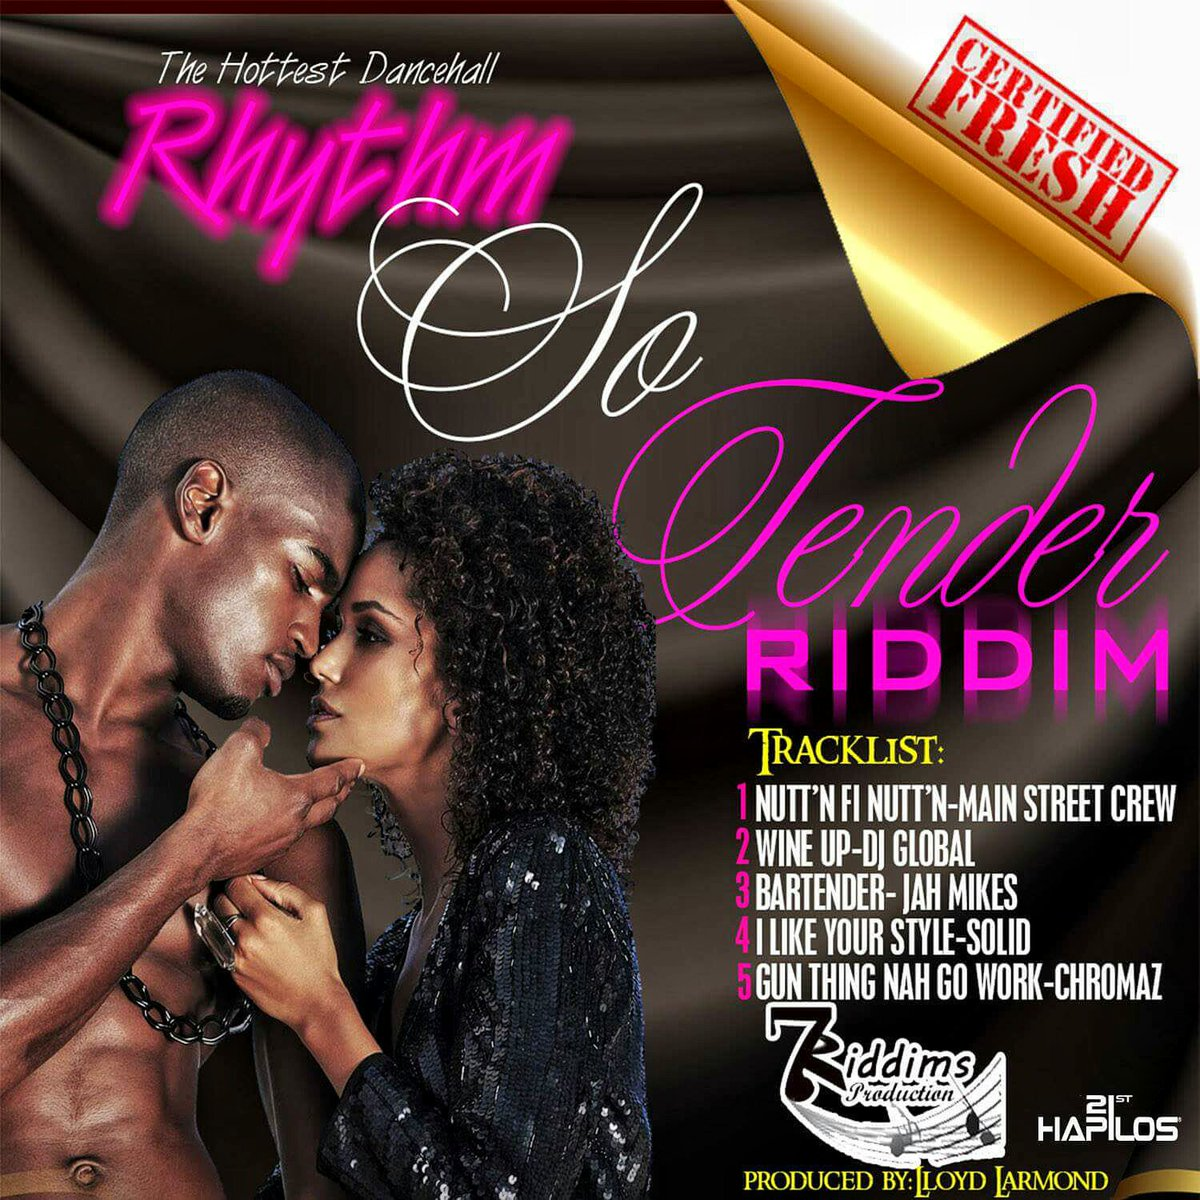 #اليوم_خروج_الضمير_مسلم 7Riddims Productions #dancehall  https:// play.google.com/store/music/al bum?id=B3qok6cslriedsyrozff6dncsza &nbsp; …  I Like Your Style - Solid. Wine Up #Spotify #Reggae #Kampala<br>http://pic.twitter.com/pF3s74gy6x